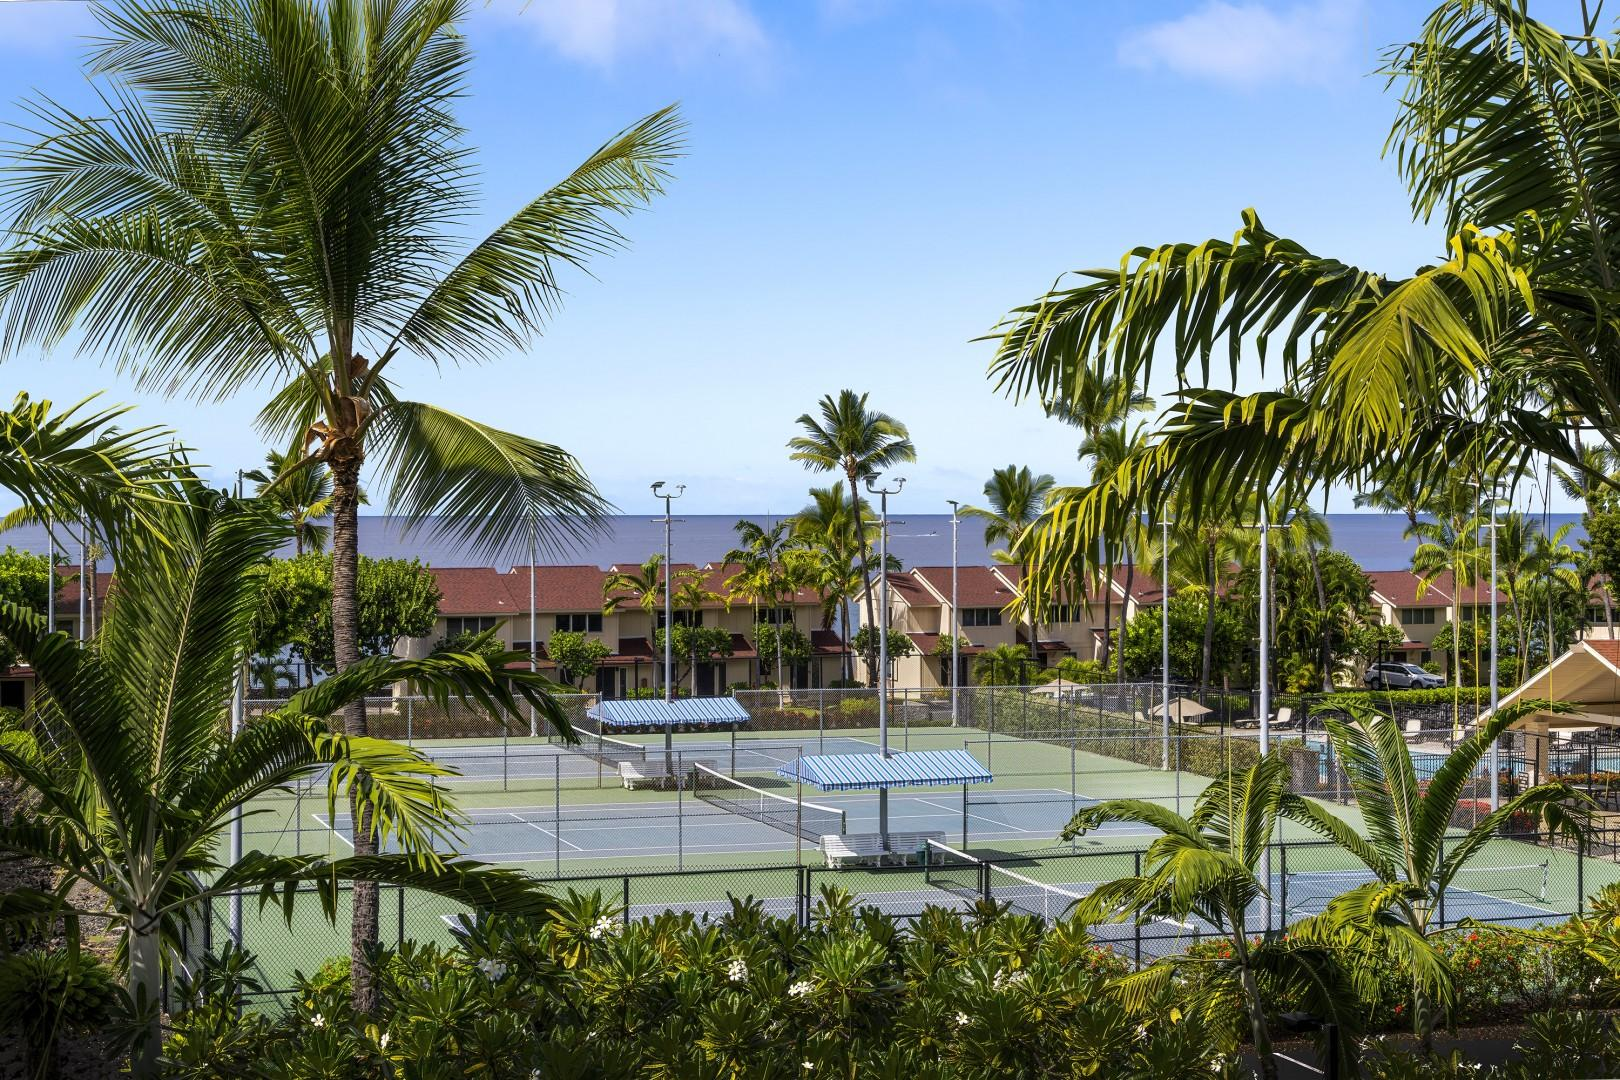 Overlooking the tennis courts from the condos Lanai